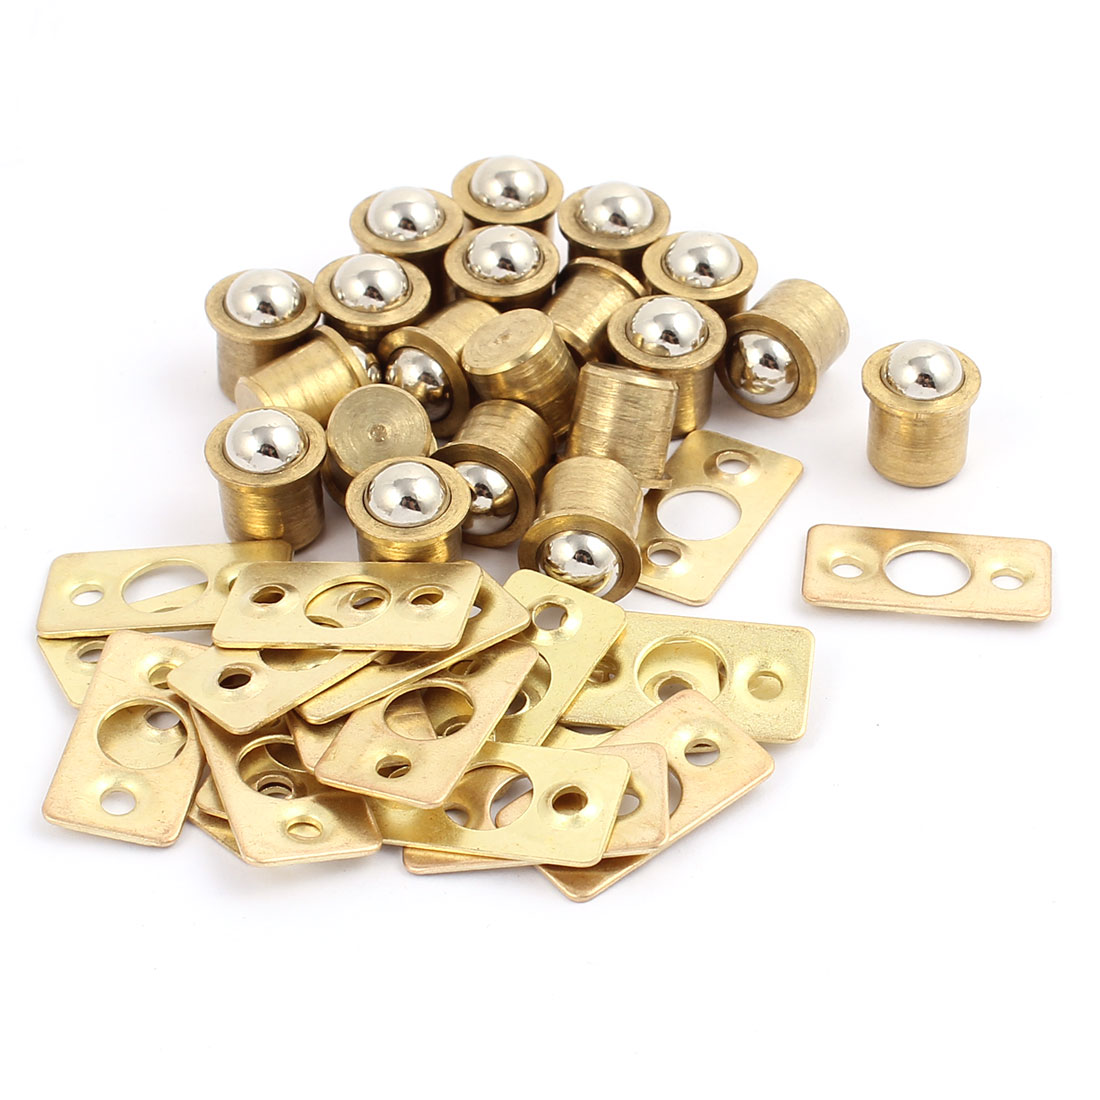 Door Cabinet Closet 9.5mm Dia Copper Ball Catch Latch Catcher 20 Sets